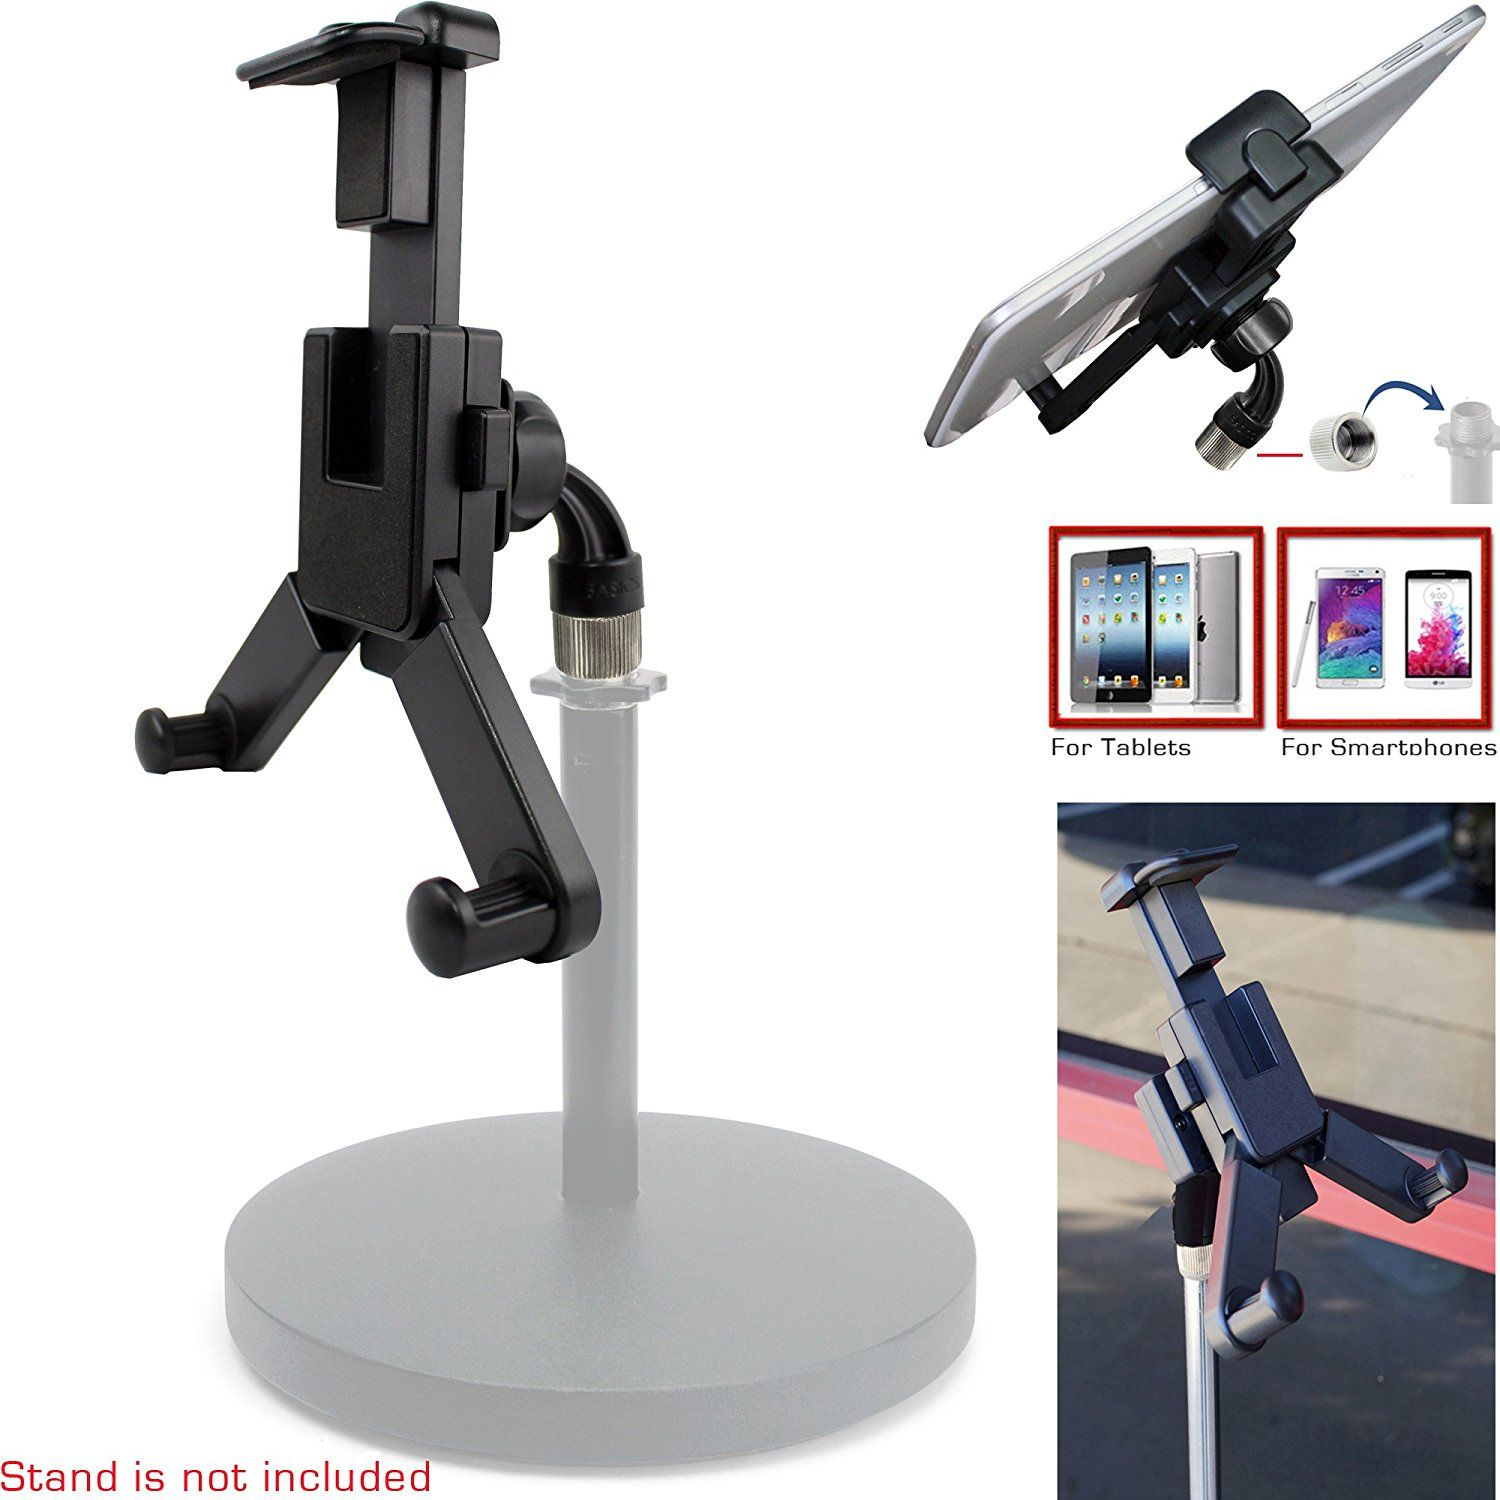 24 95 chargercity 360Â swivel smartphone tablet mount holder w